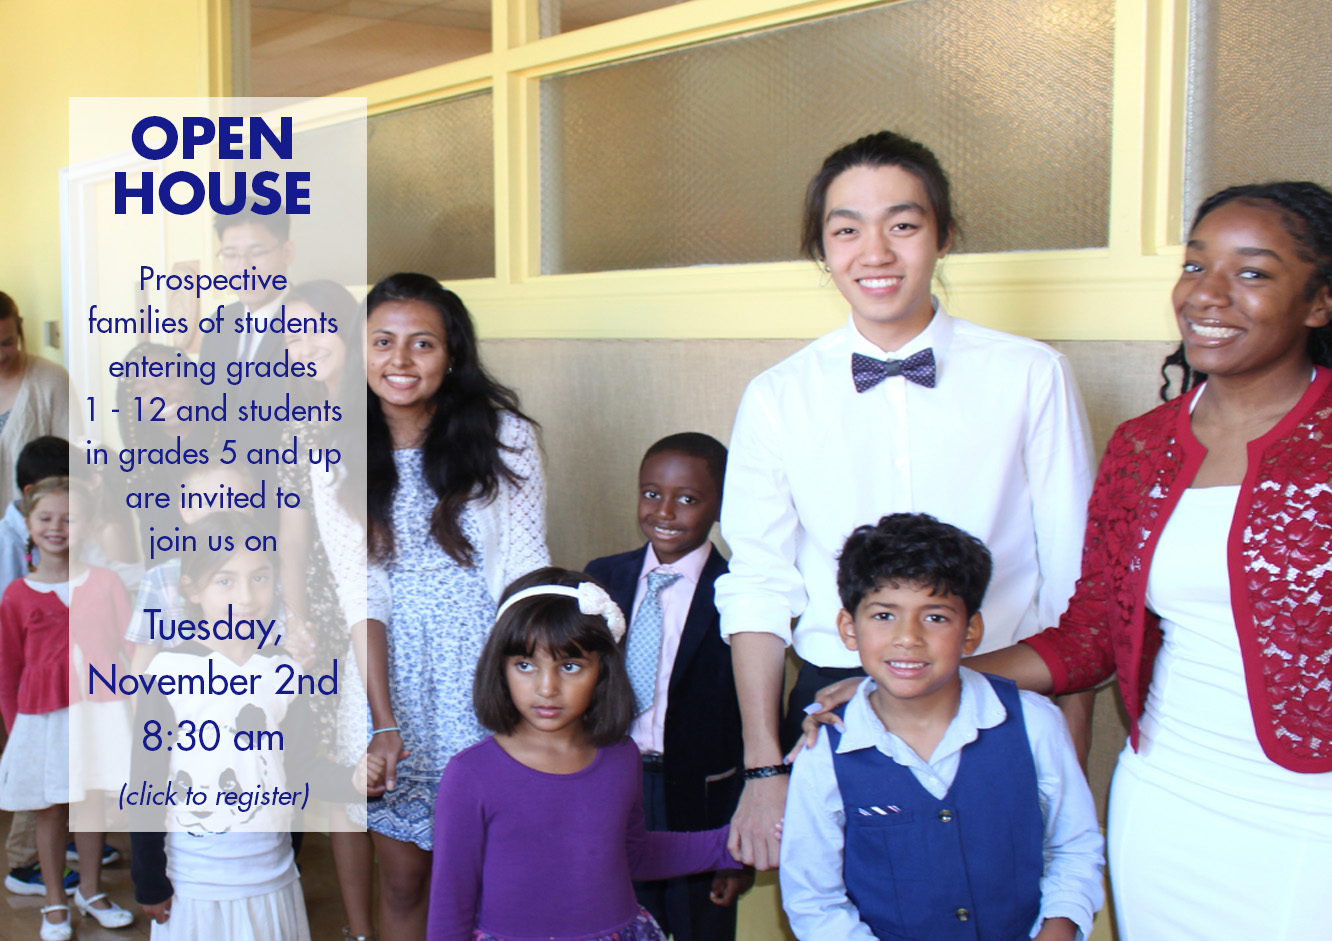 Open House - Click to register